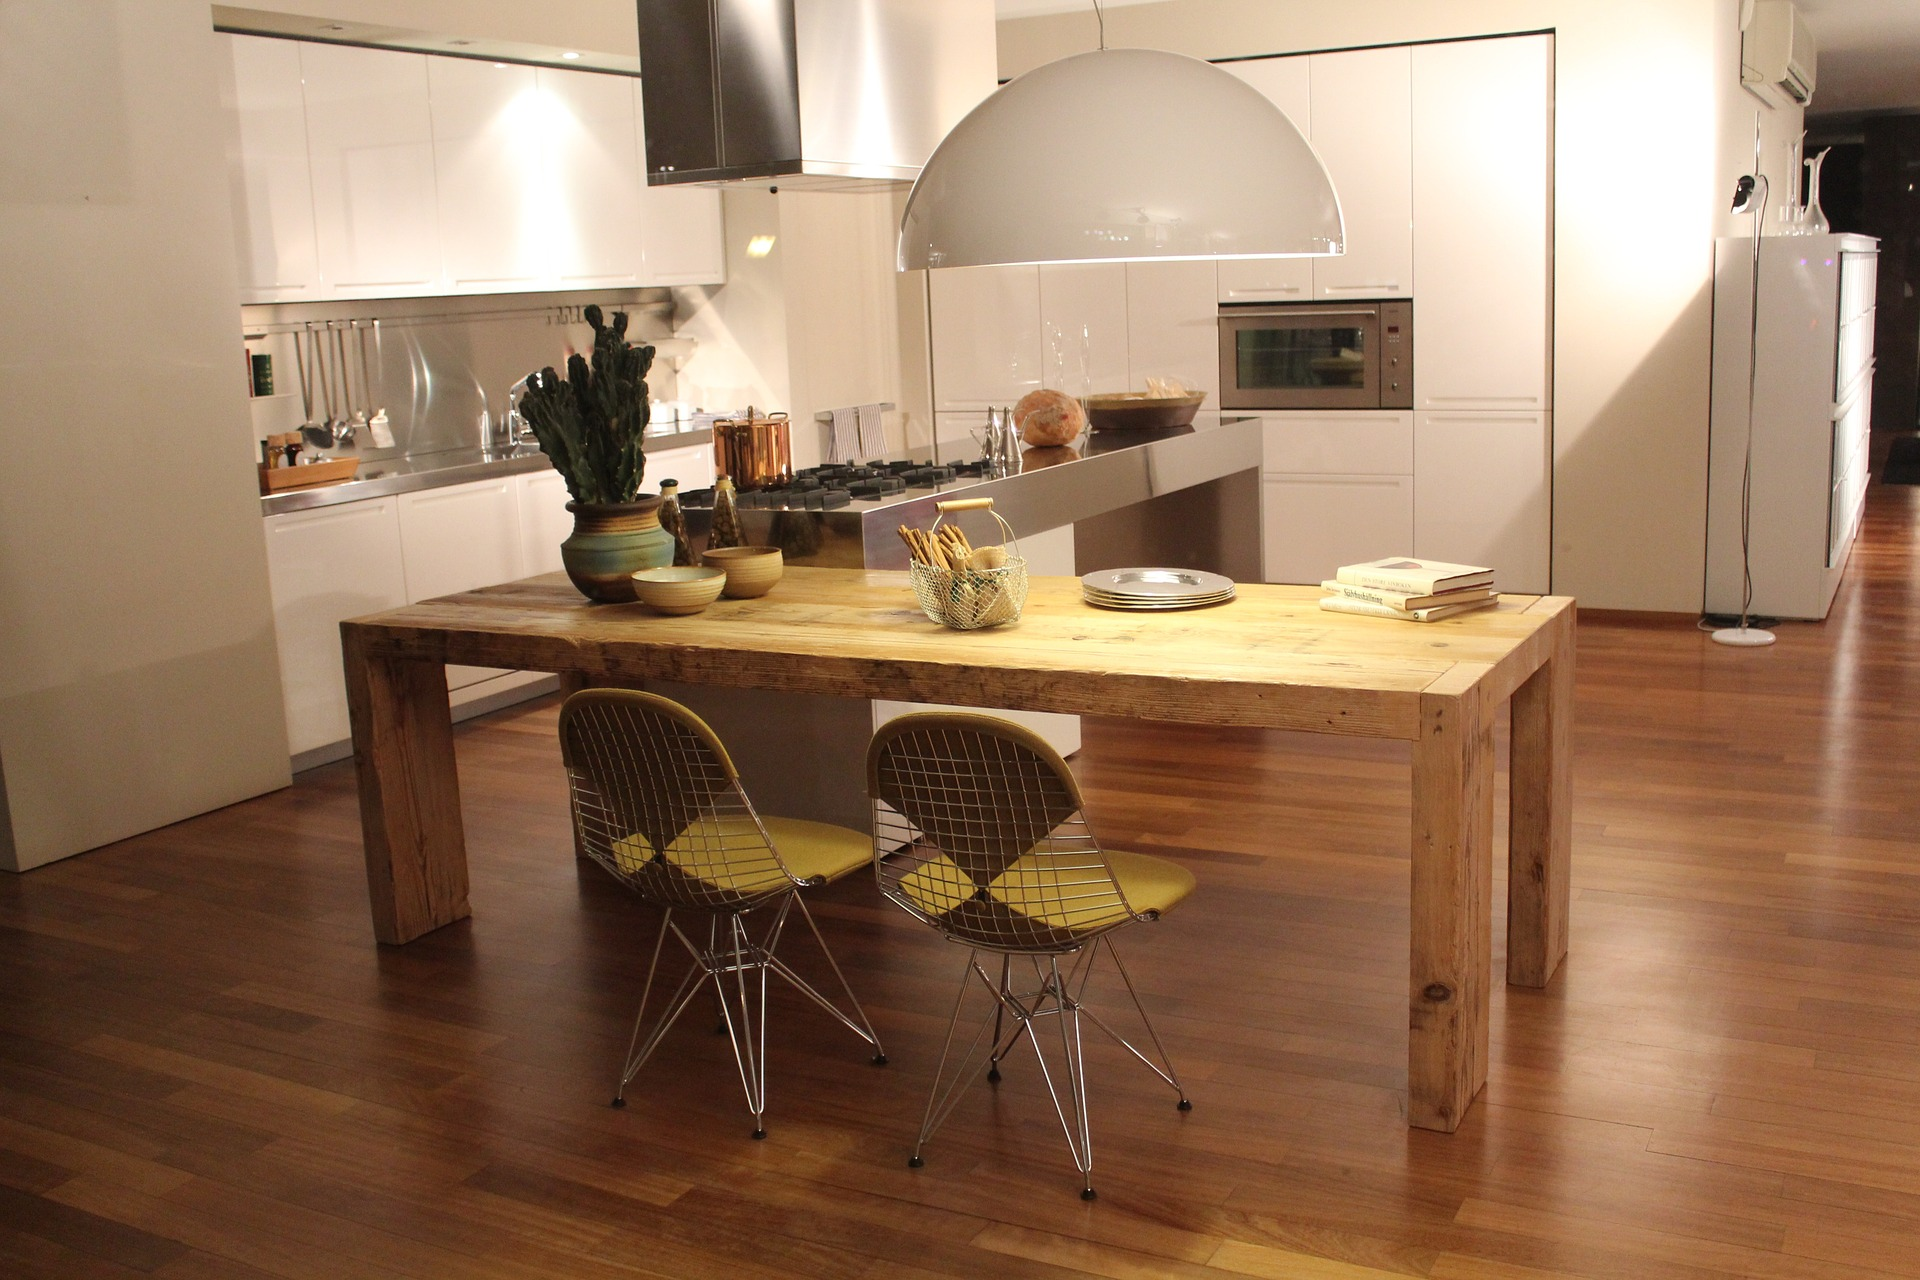 How a Professional Chef would remodel your kitchen